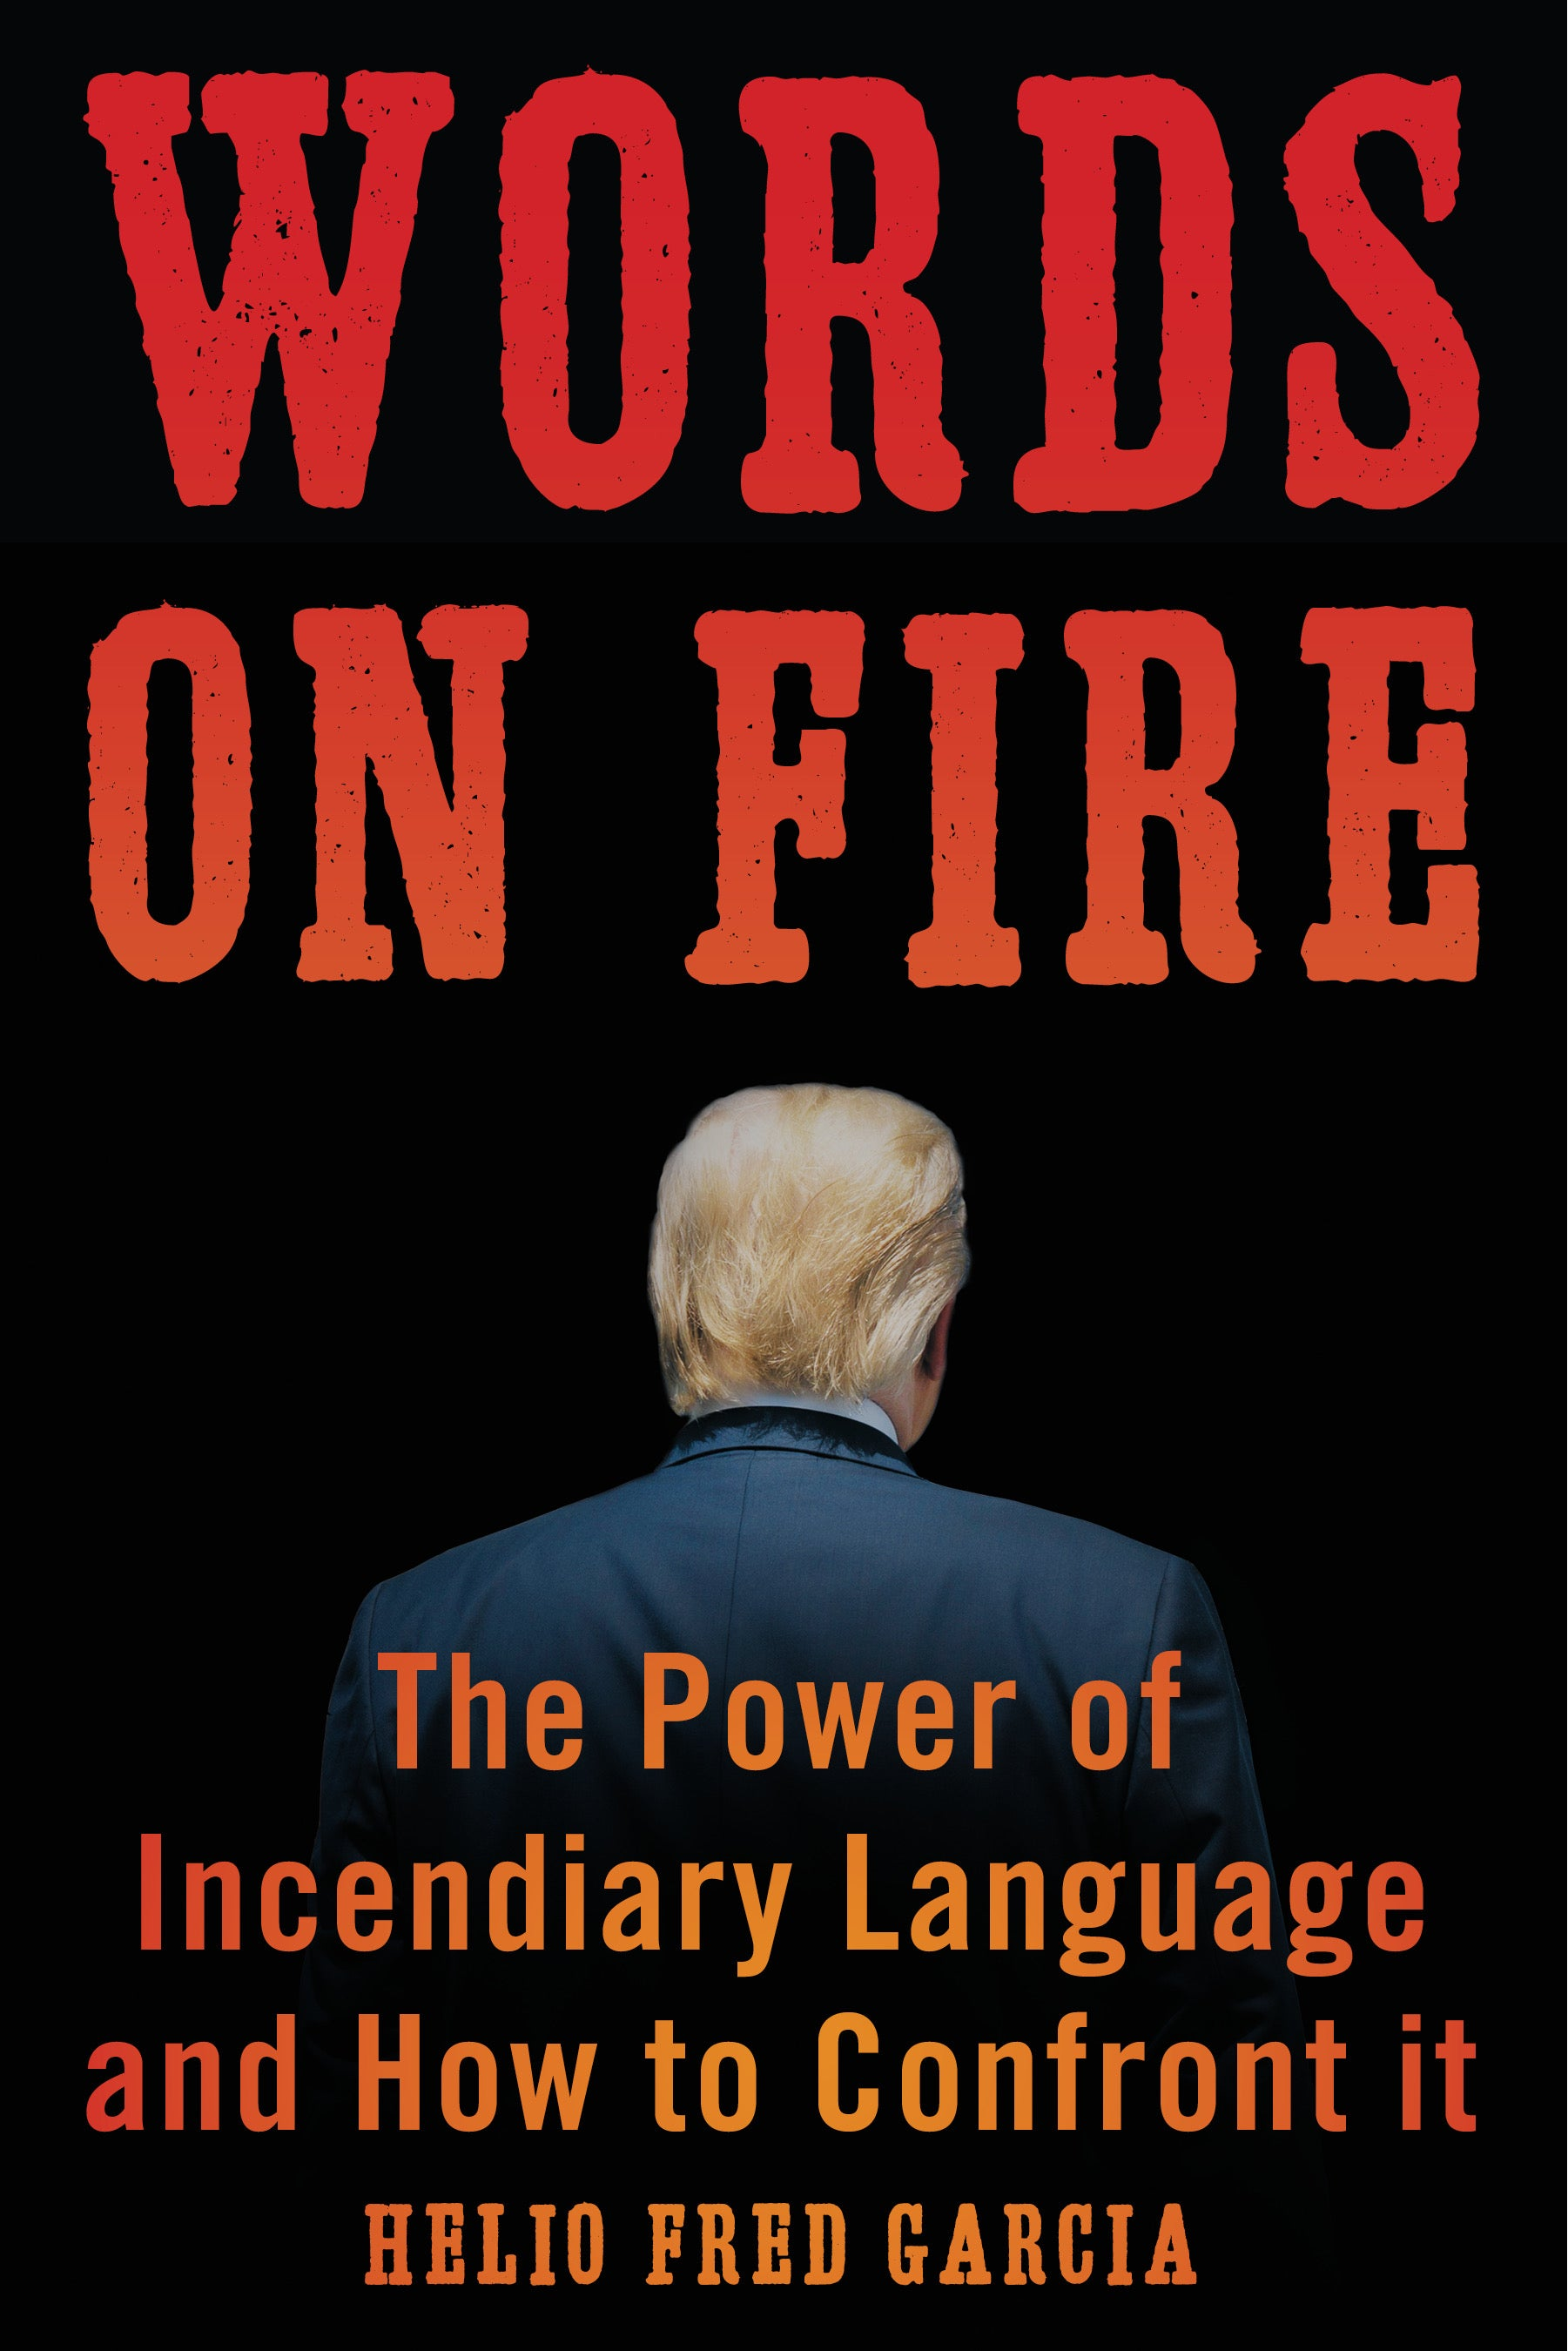 Words on Fire: The Power of Incendiary Language and How to Confront It by Helio Fred Garcia